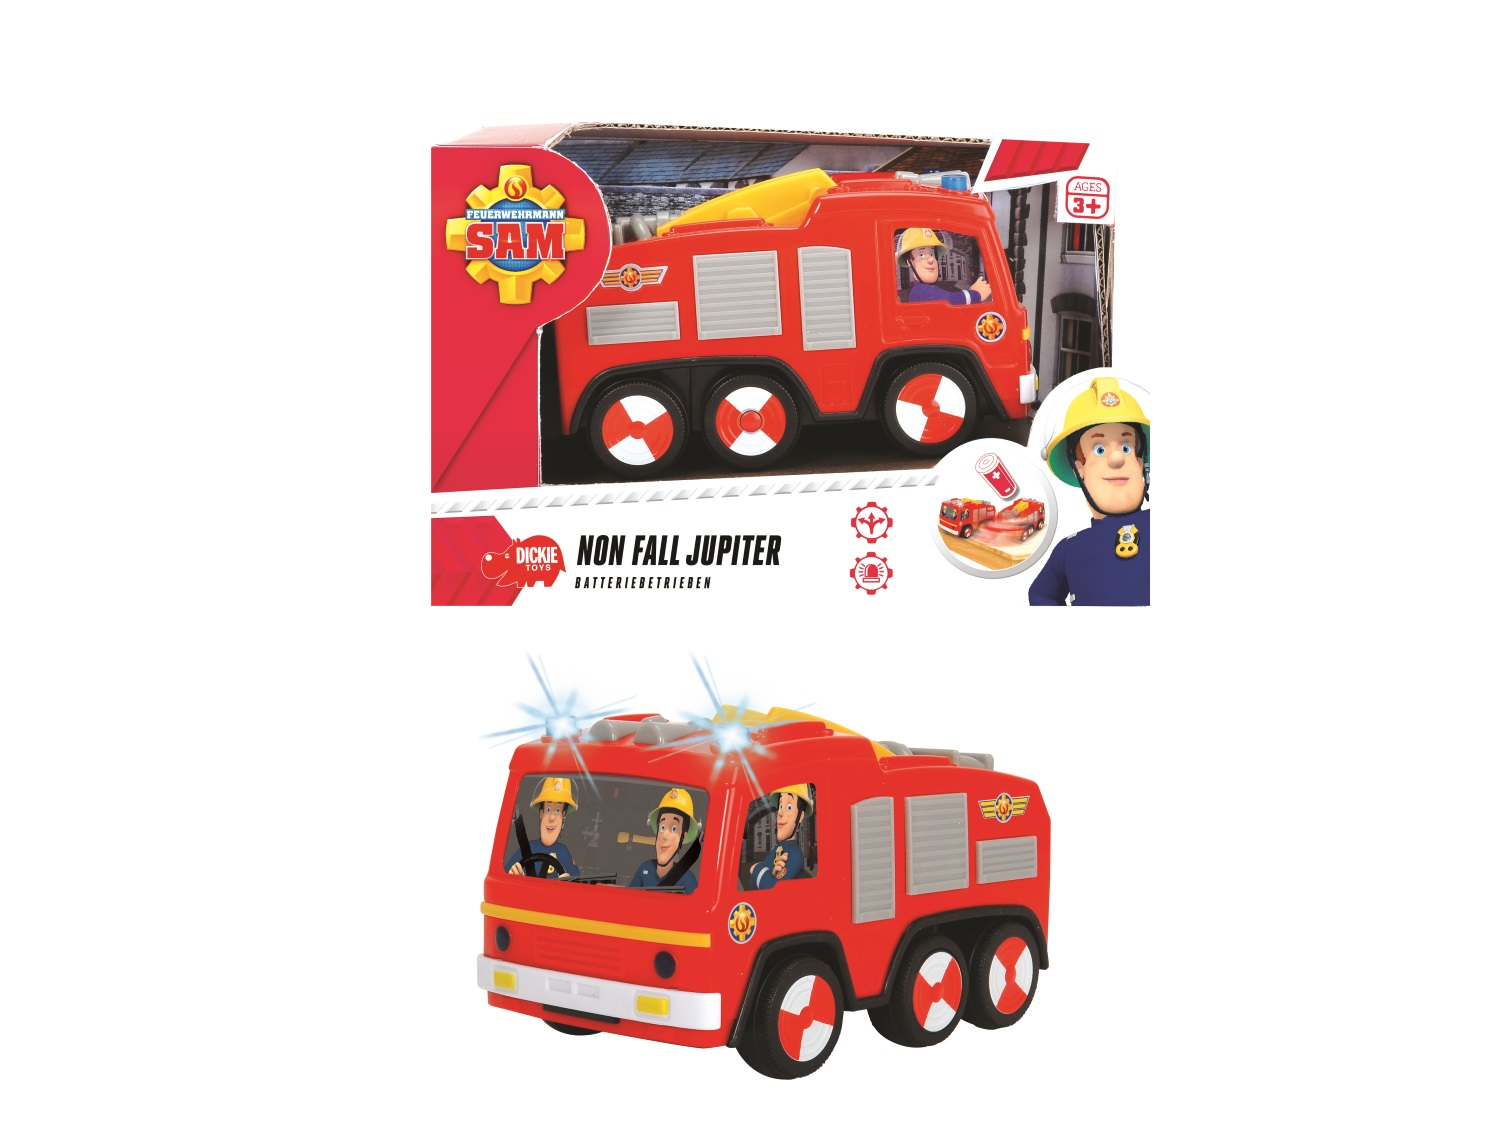 Fireman Sam Non Fall Jupiter